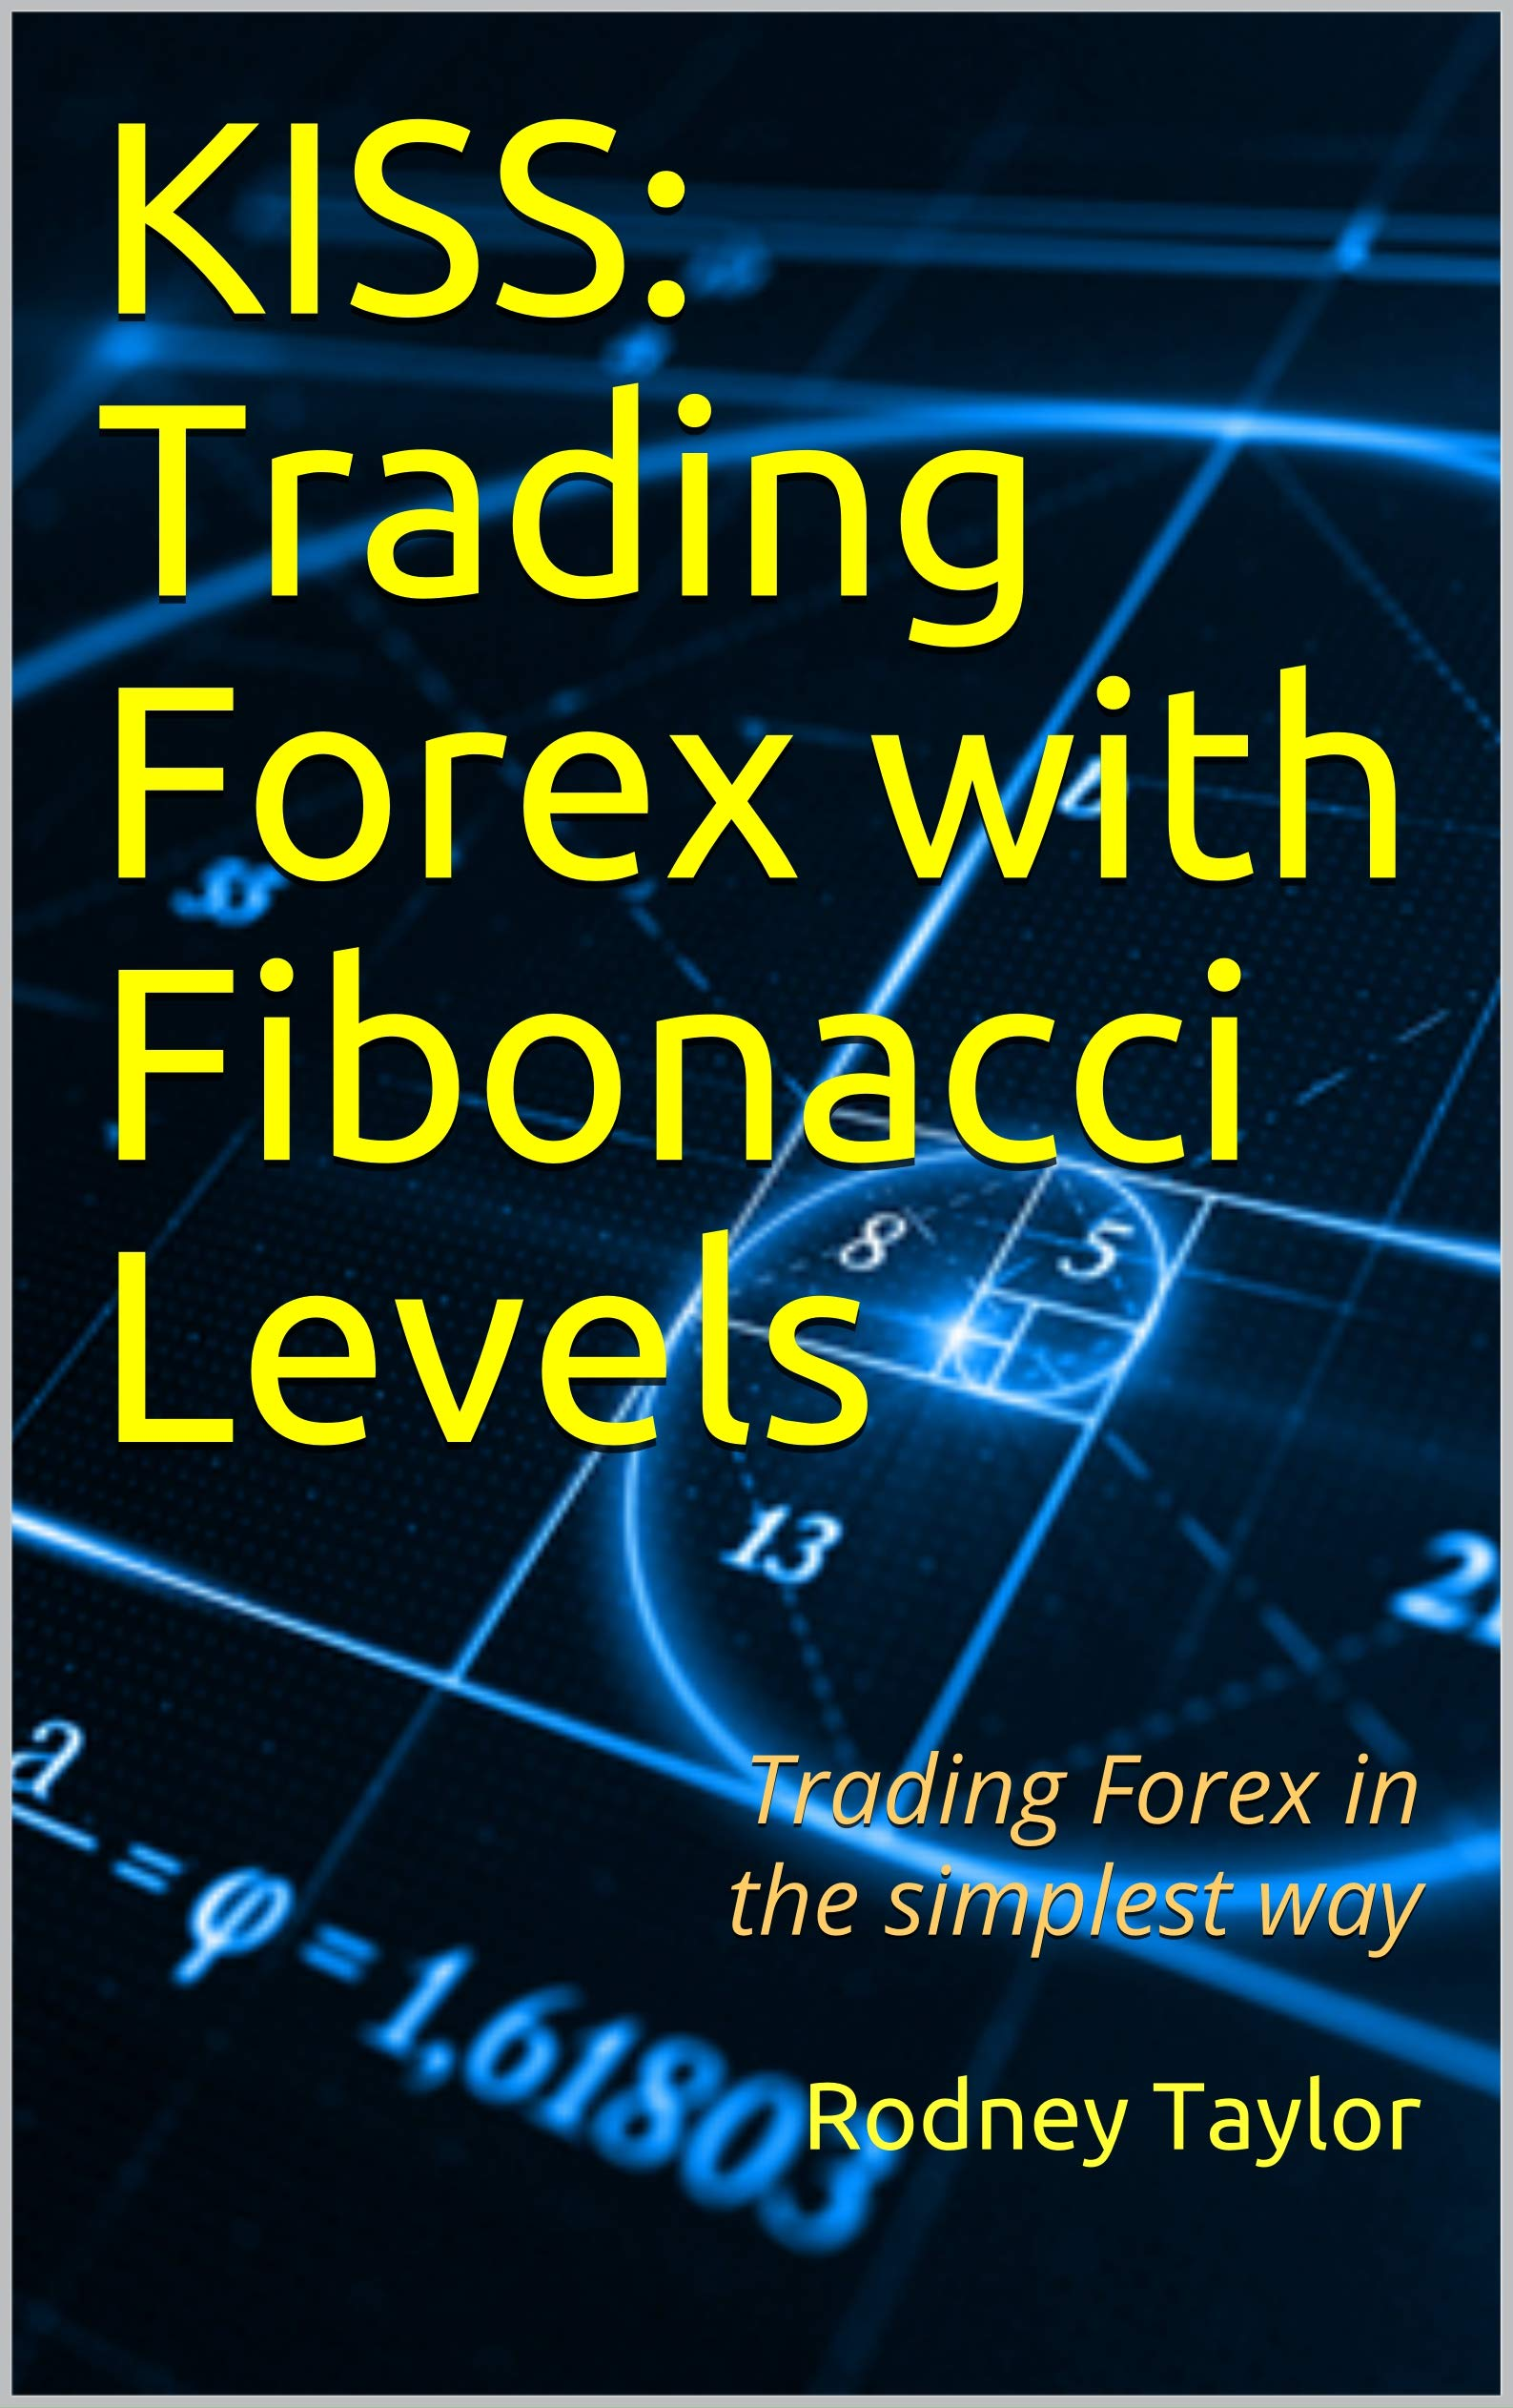 KISS: Trading Forex with Fibonacci Levels: Trading Forex in the simplest way